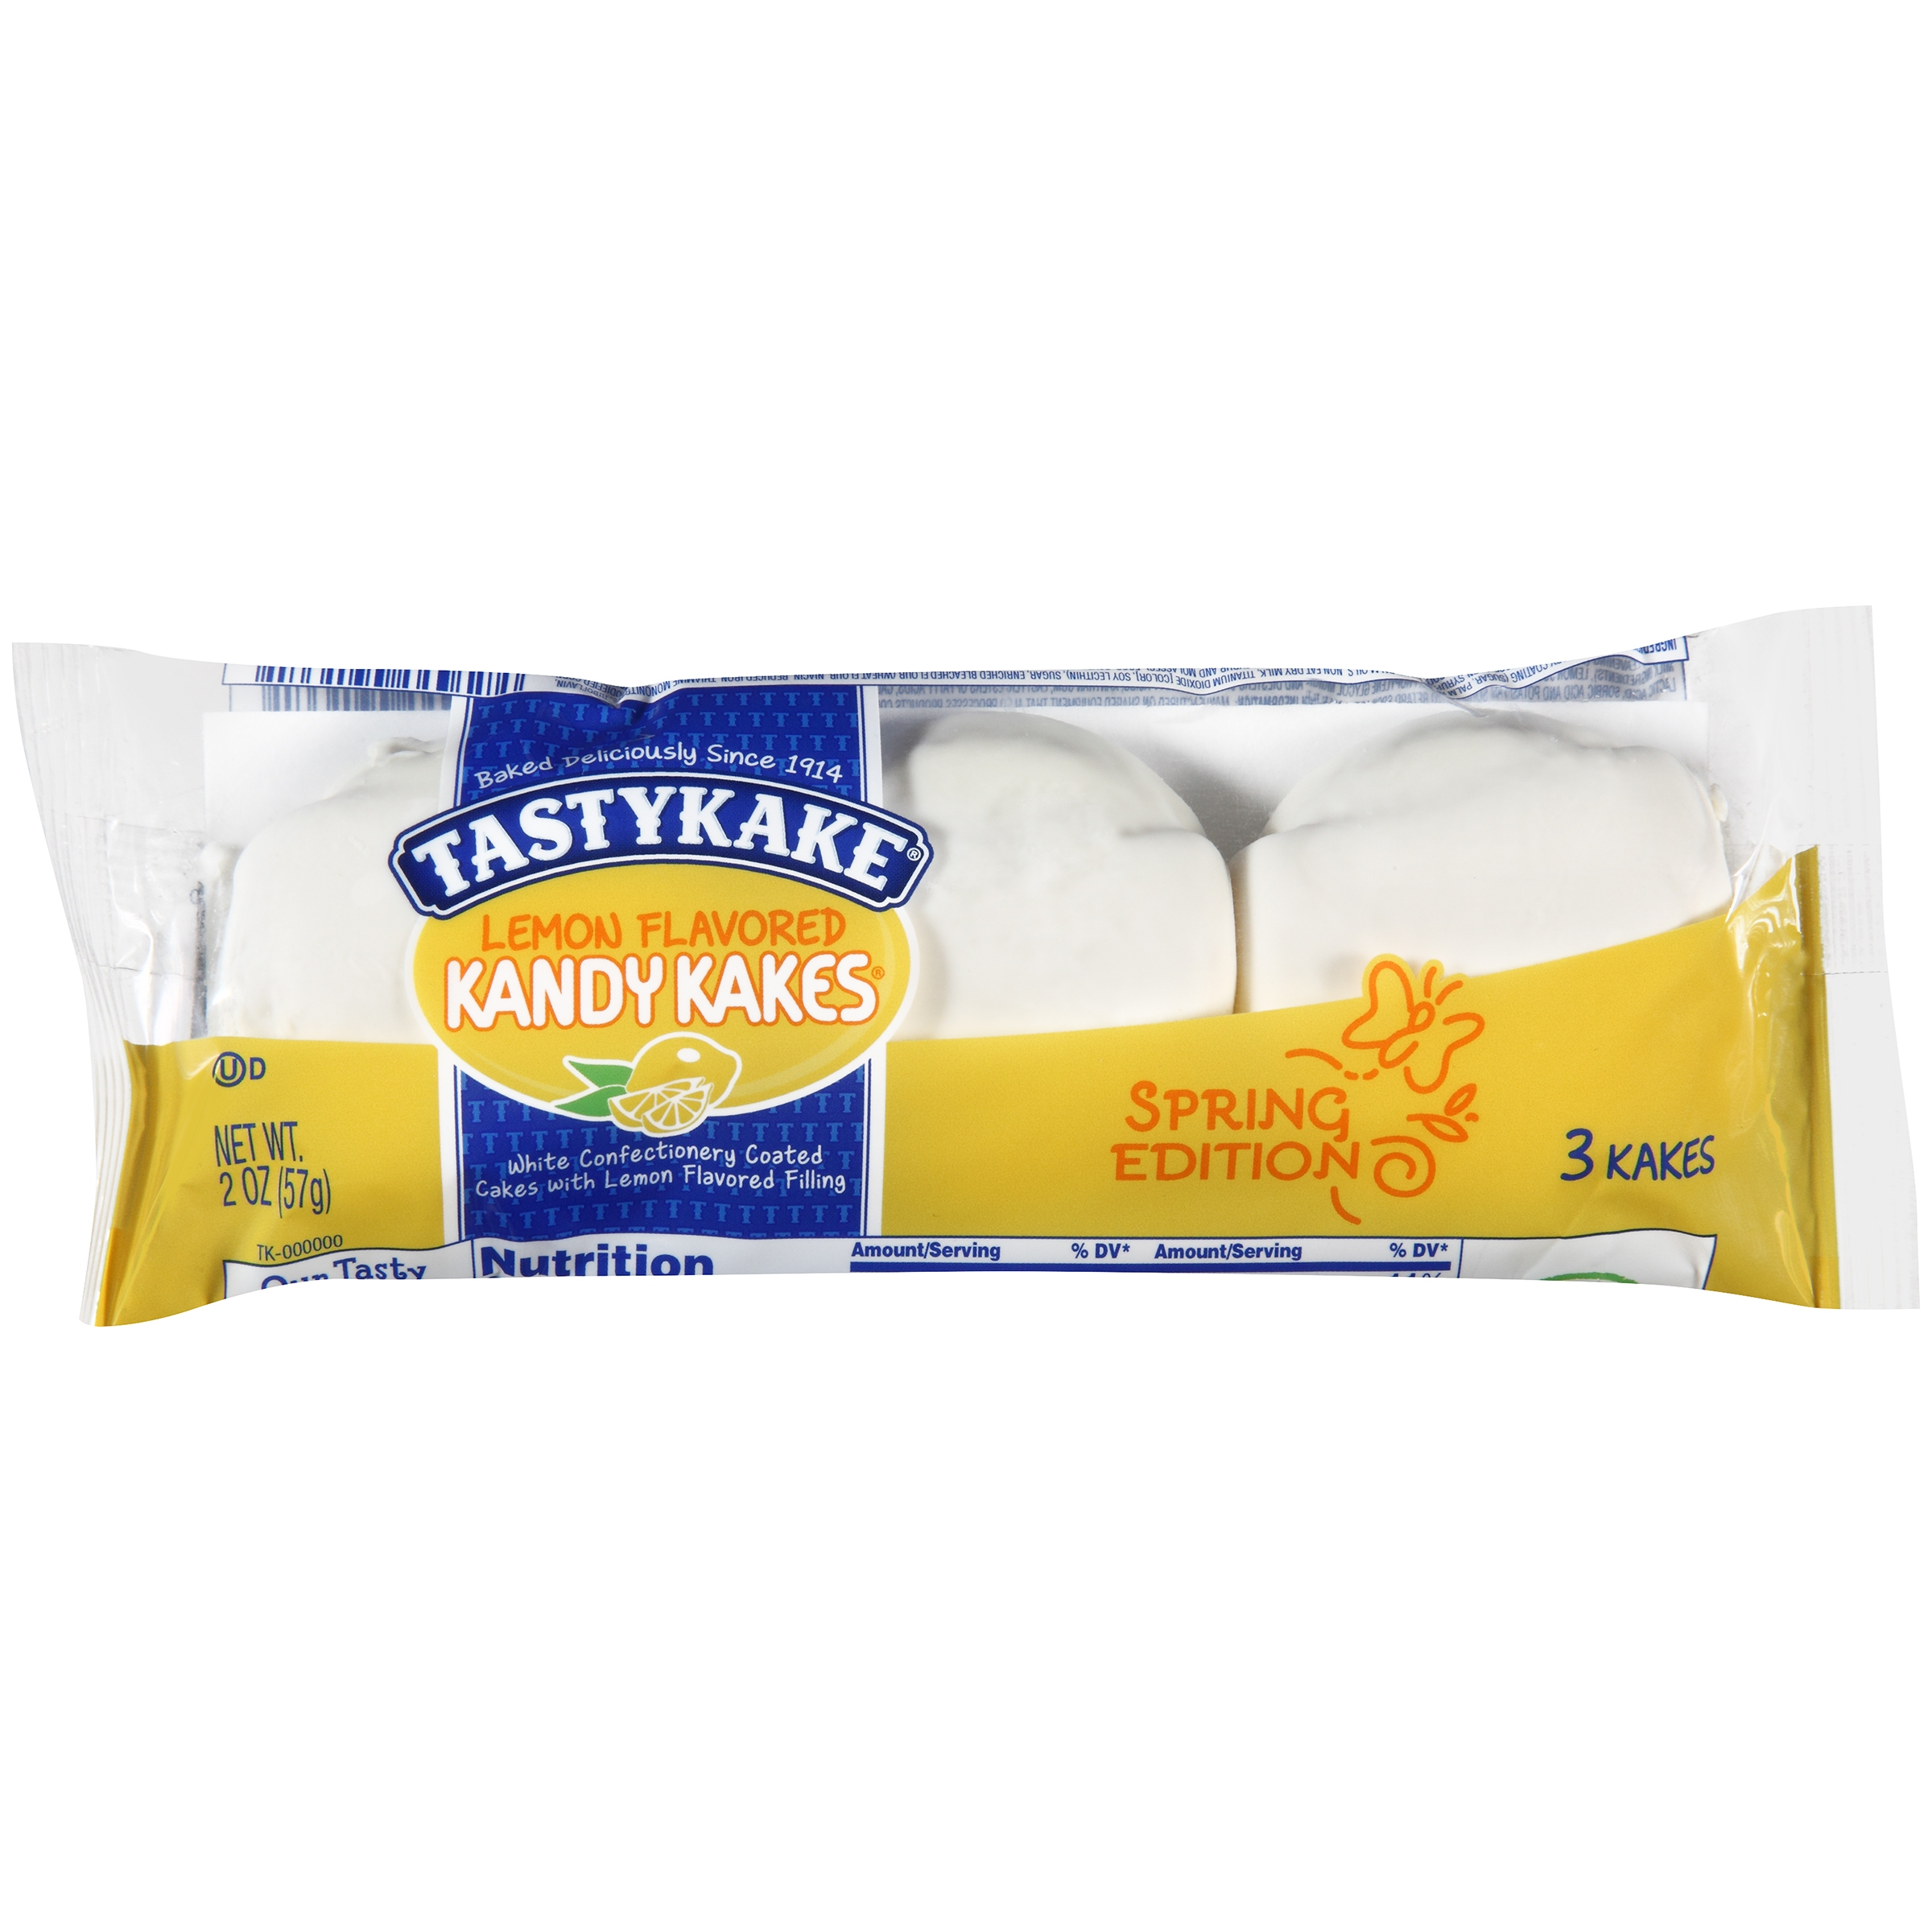 Tastykake® Lemon Flavored Kandy Kakes® 2 oz. Pack